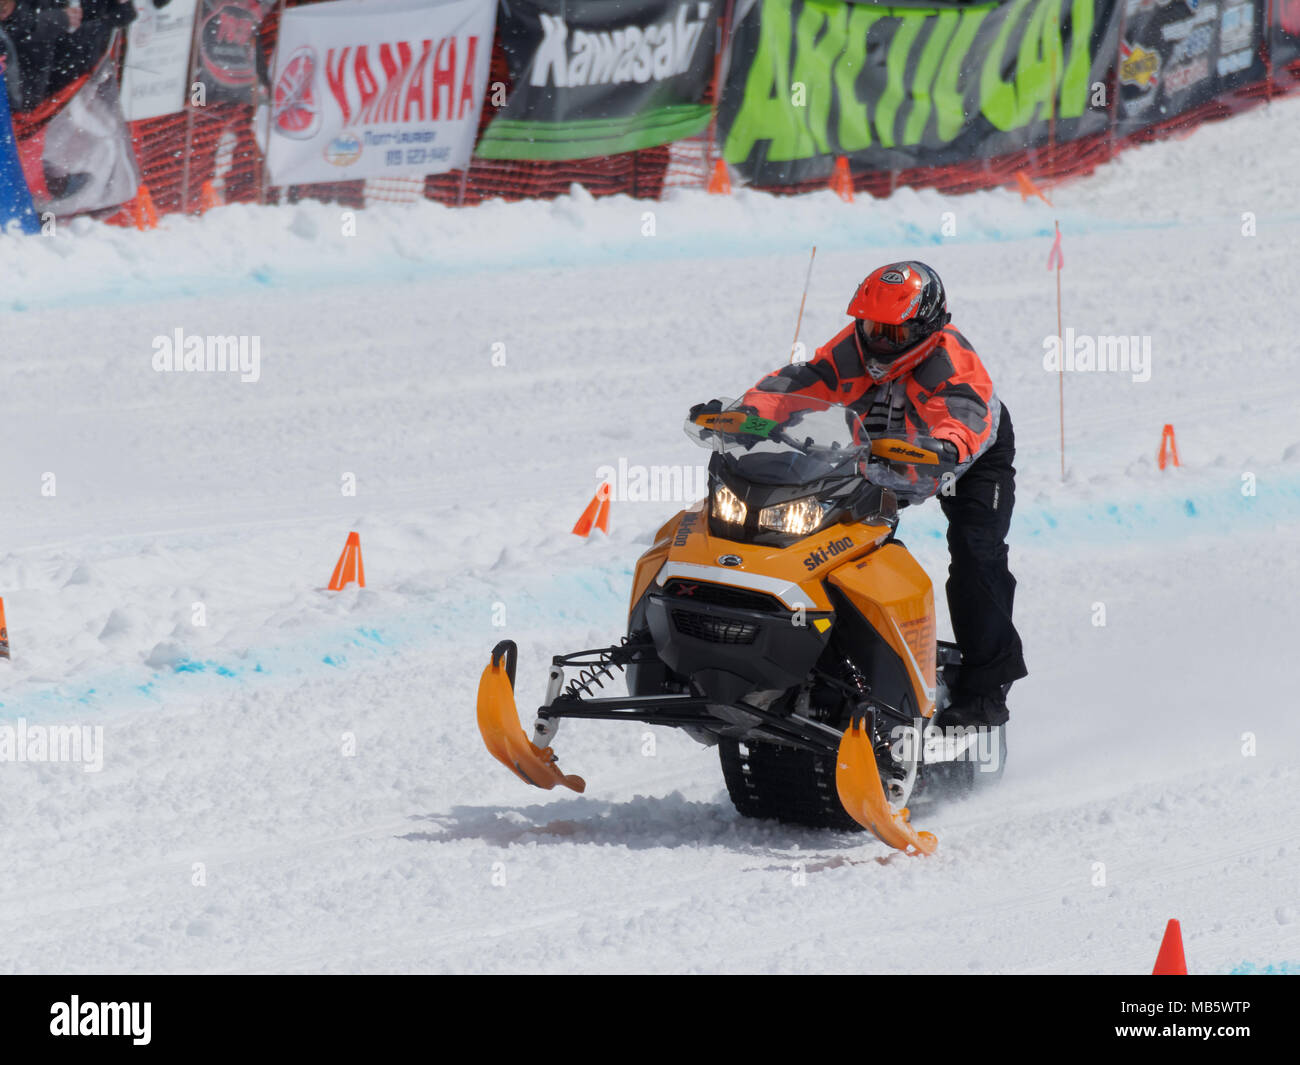 Quebec, Canada 4/7/2018 Snowmobile uphill drag race held on